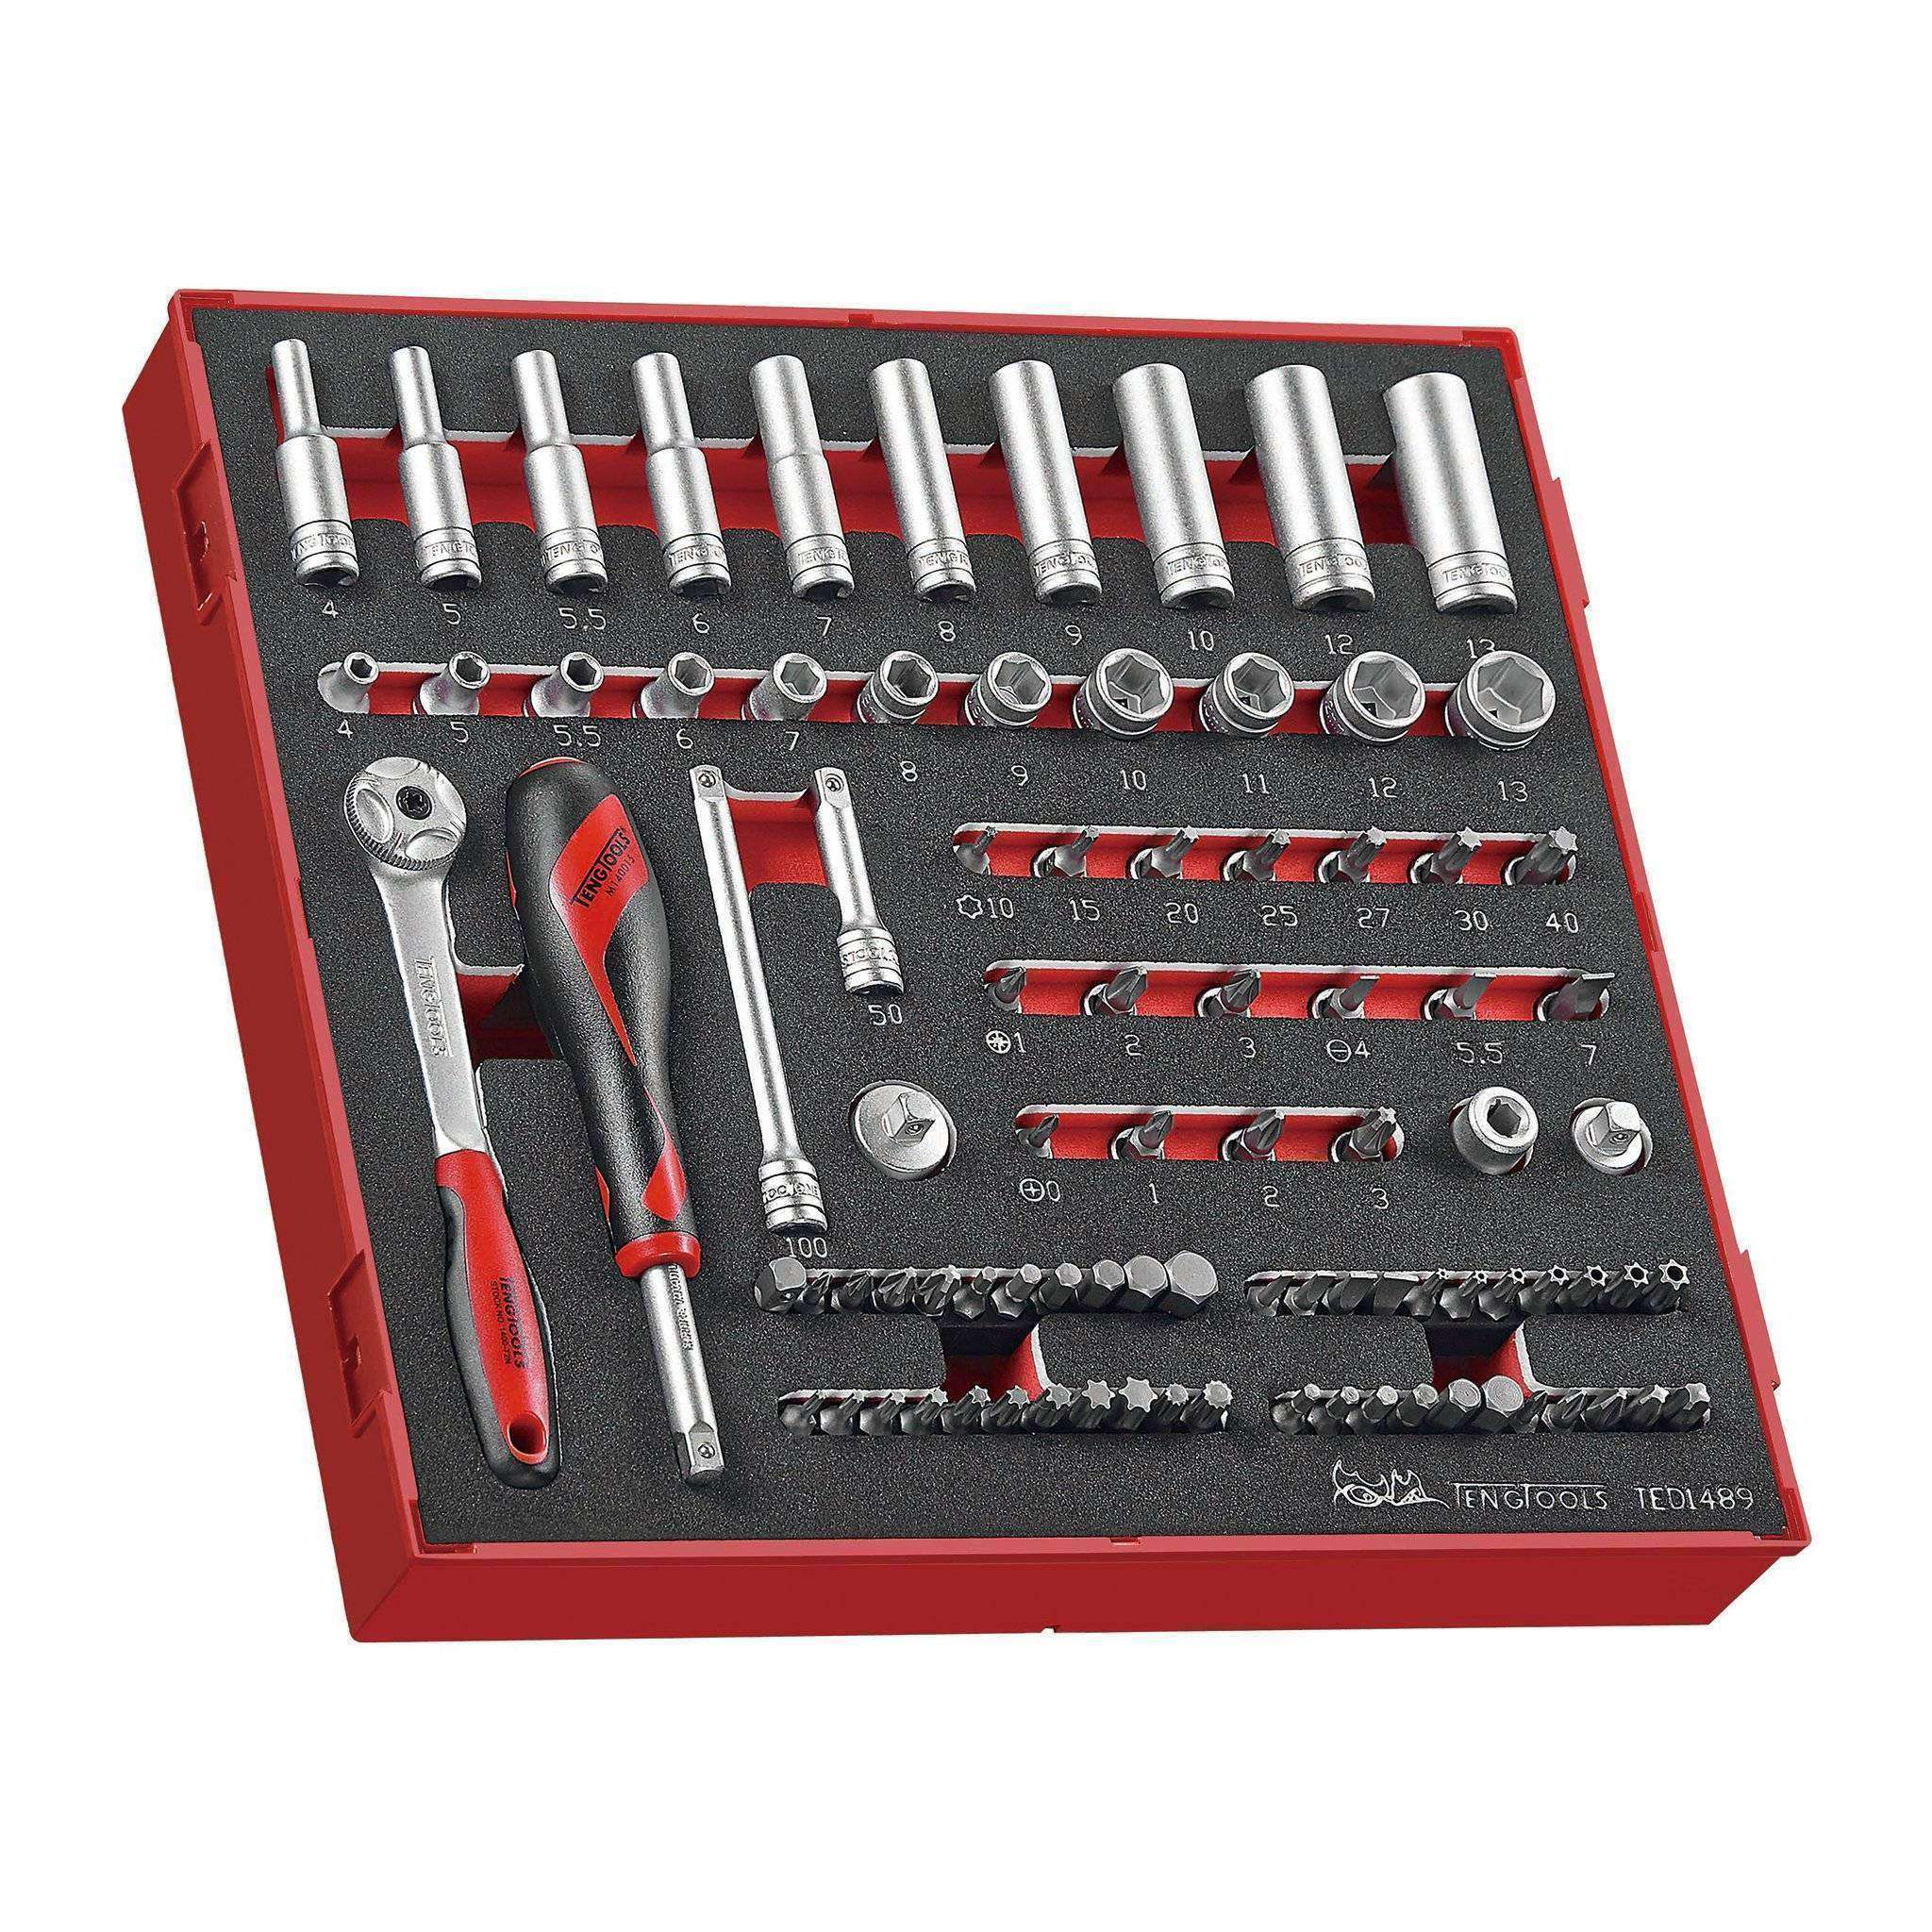 Teng Tools TED1489 - 89 Piece 1/4 inch Drive Socket Set in EVA Tray - Teng Tools USA